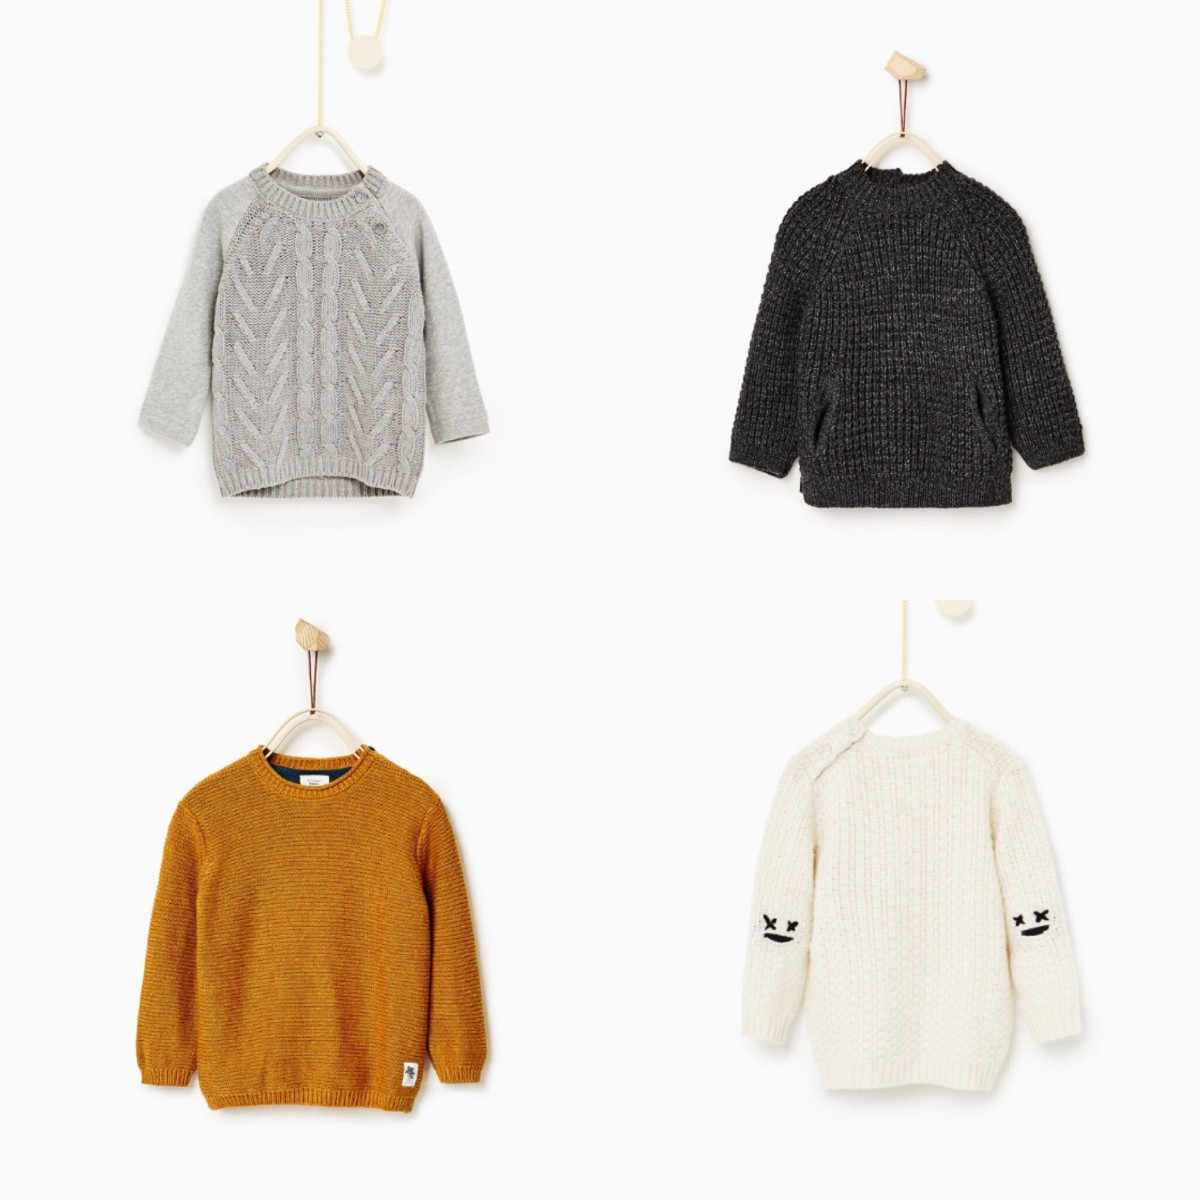 2cd7727a0df Clockwise from top left: Cable Knit Sweater £16.99, Textured Sweater  £16.99, Little Faces Elbow Patch Sweater £16.99, Basic Textured Sweater  £12.99